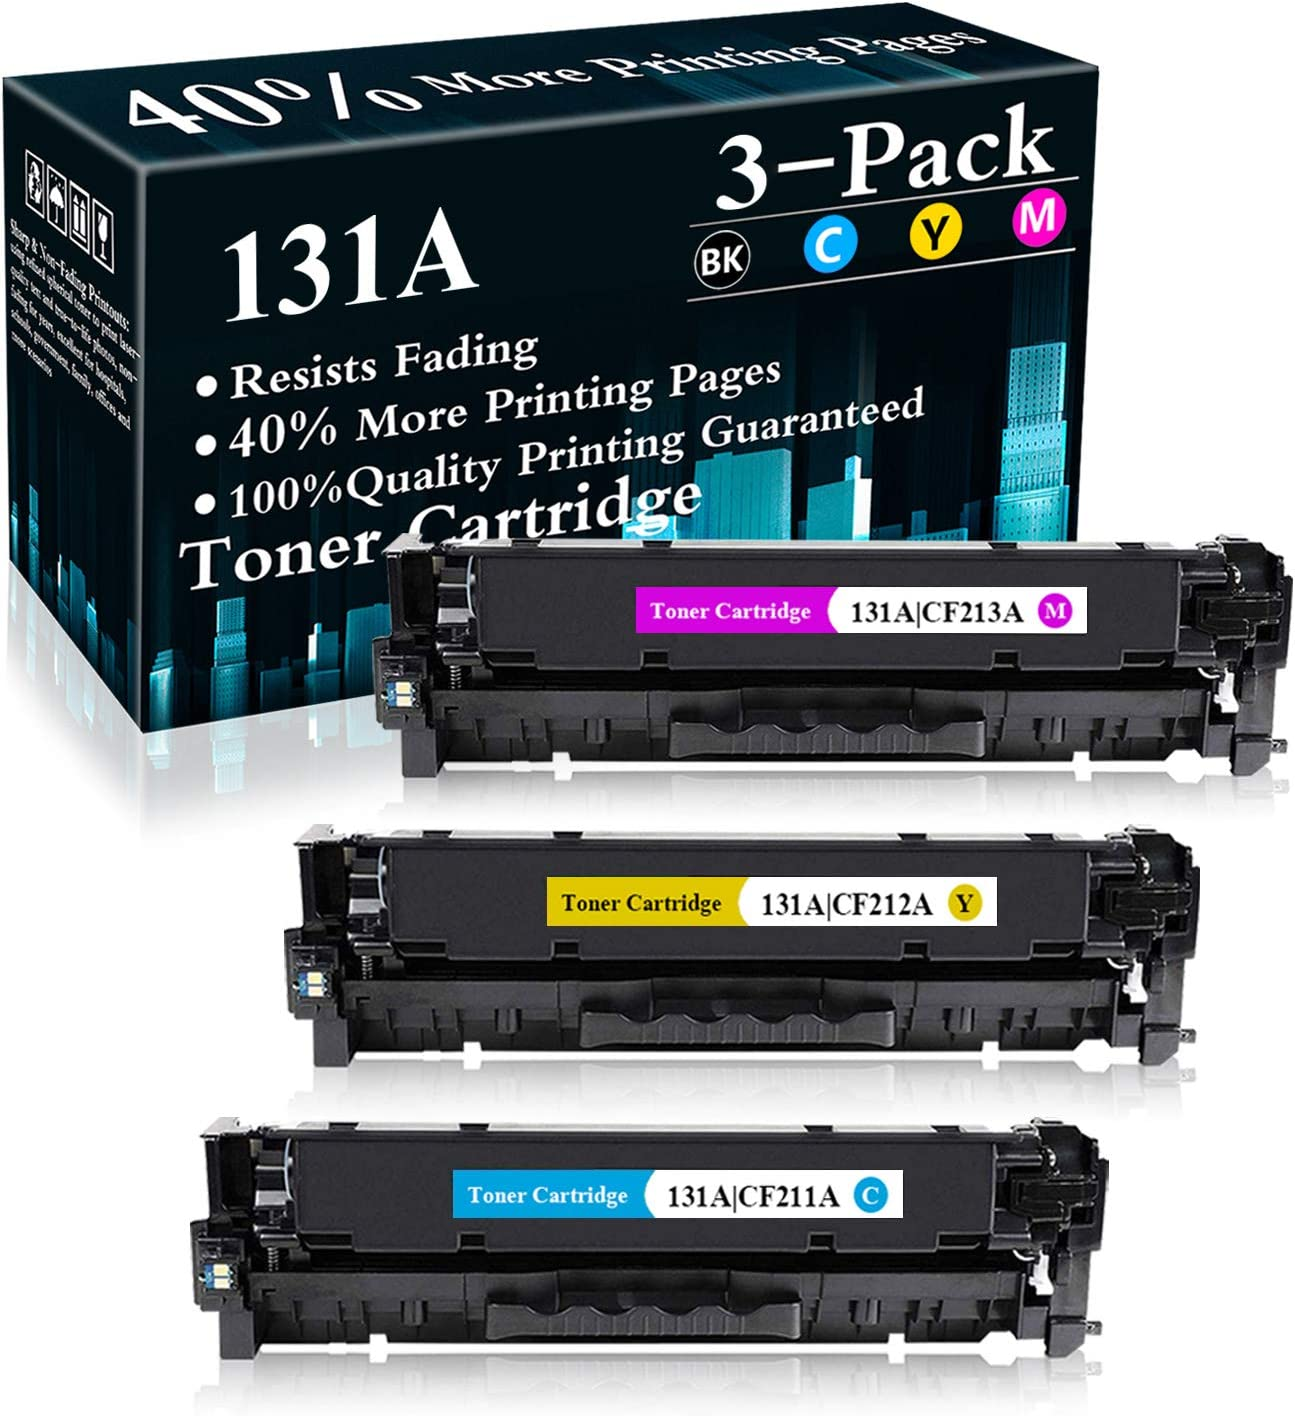 3 Pack (C/M/Y) 131A | CF211A CF212A CF213A Remanufactured Toner Cartridge Replacement for HP Color Laserjet Pro M251n(CF146A) M251nw(CF147A) M276n(CF144A) M276nw(CF145A) Printer,Sold by TopInk